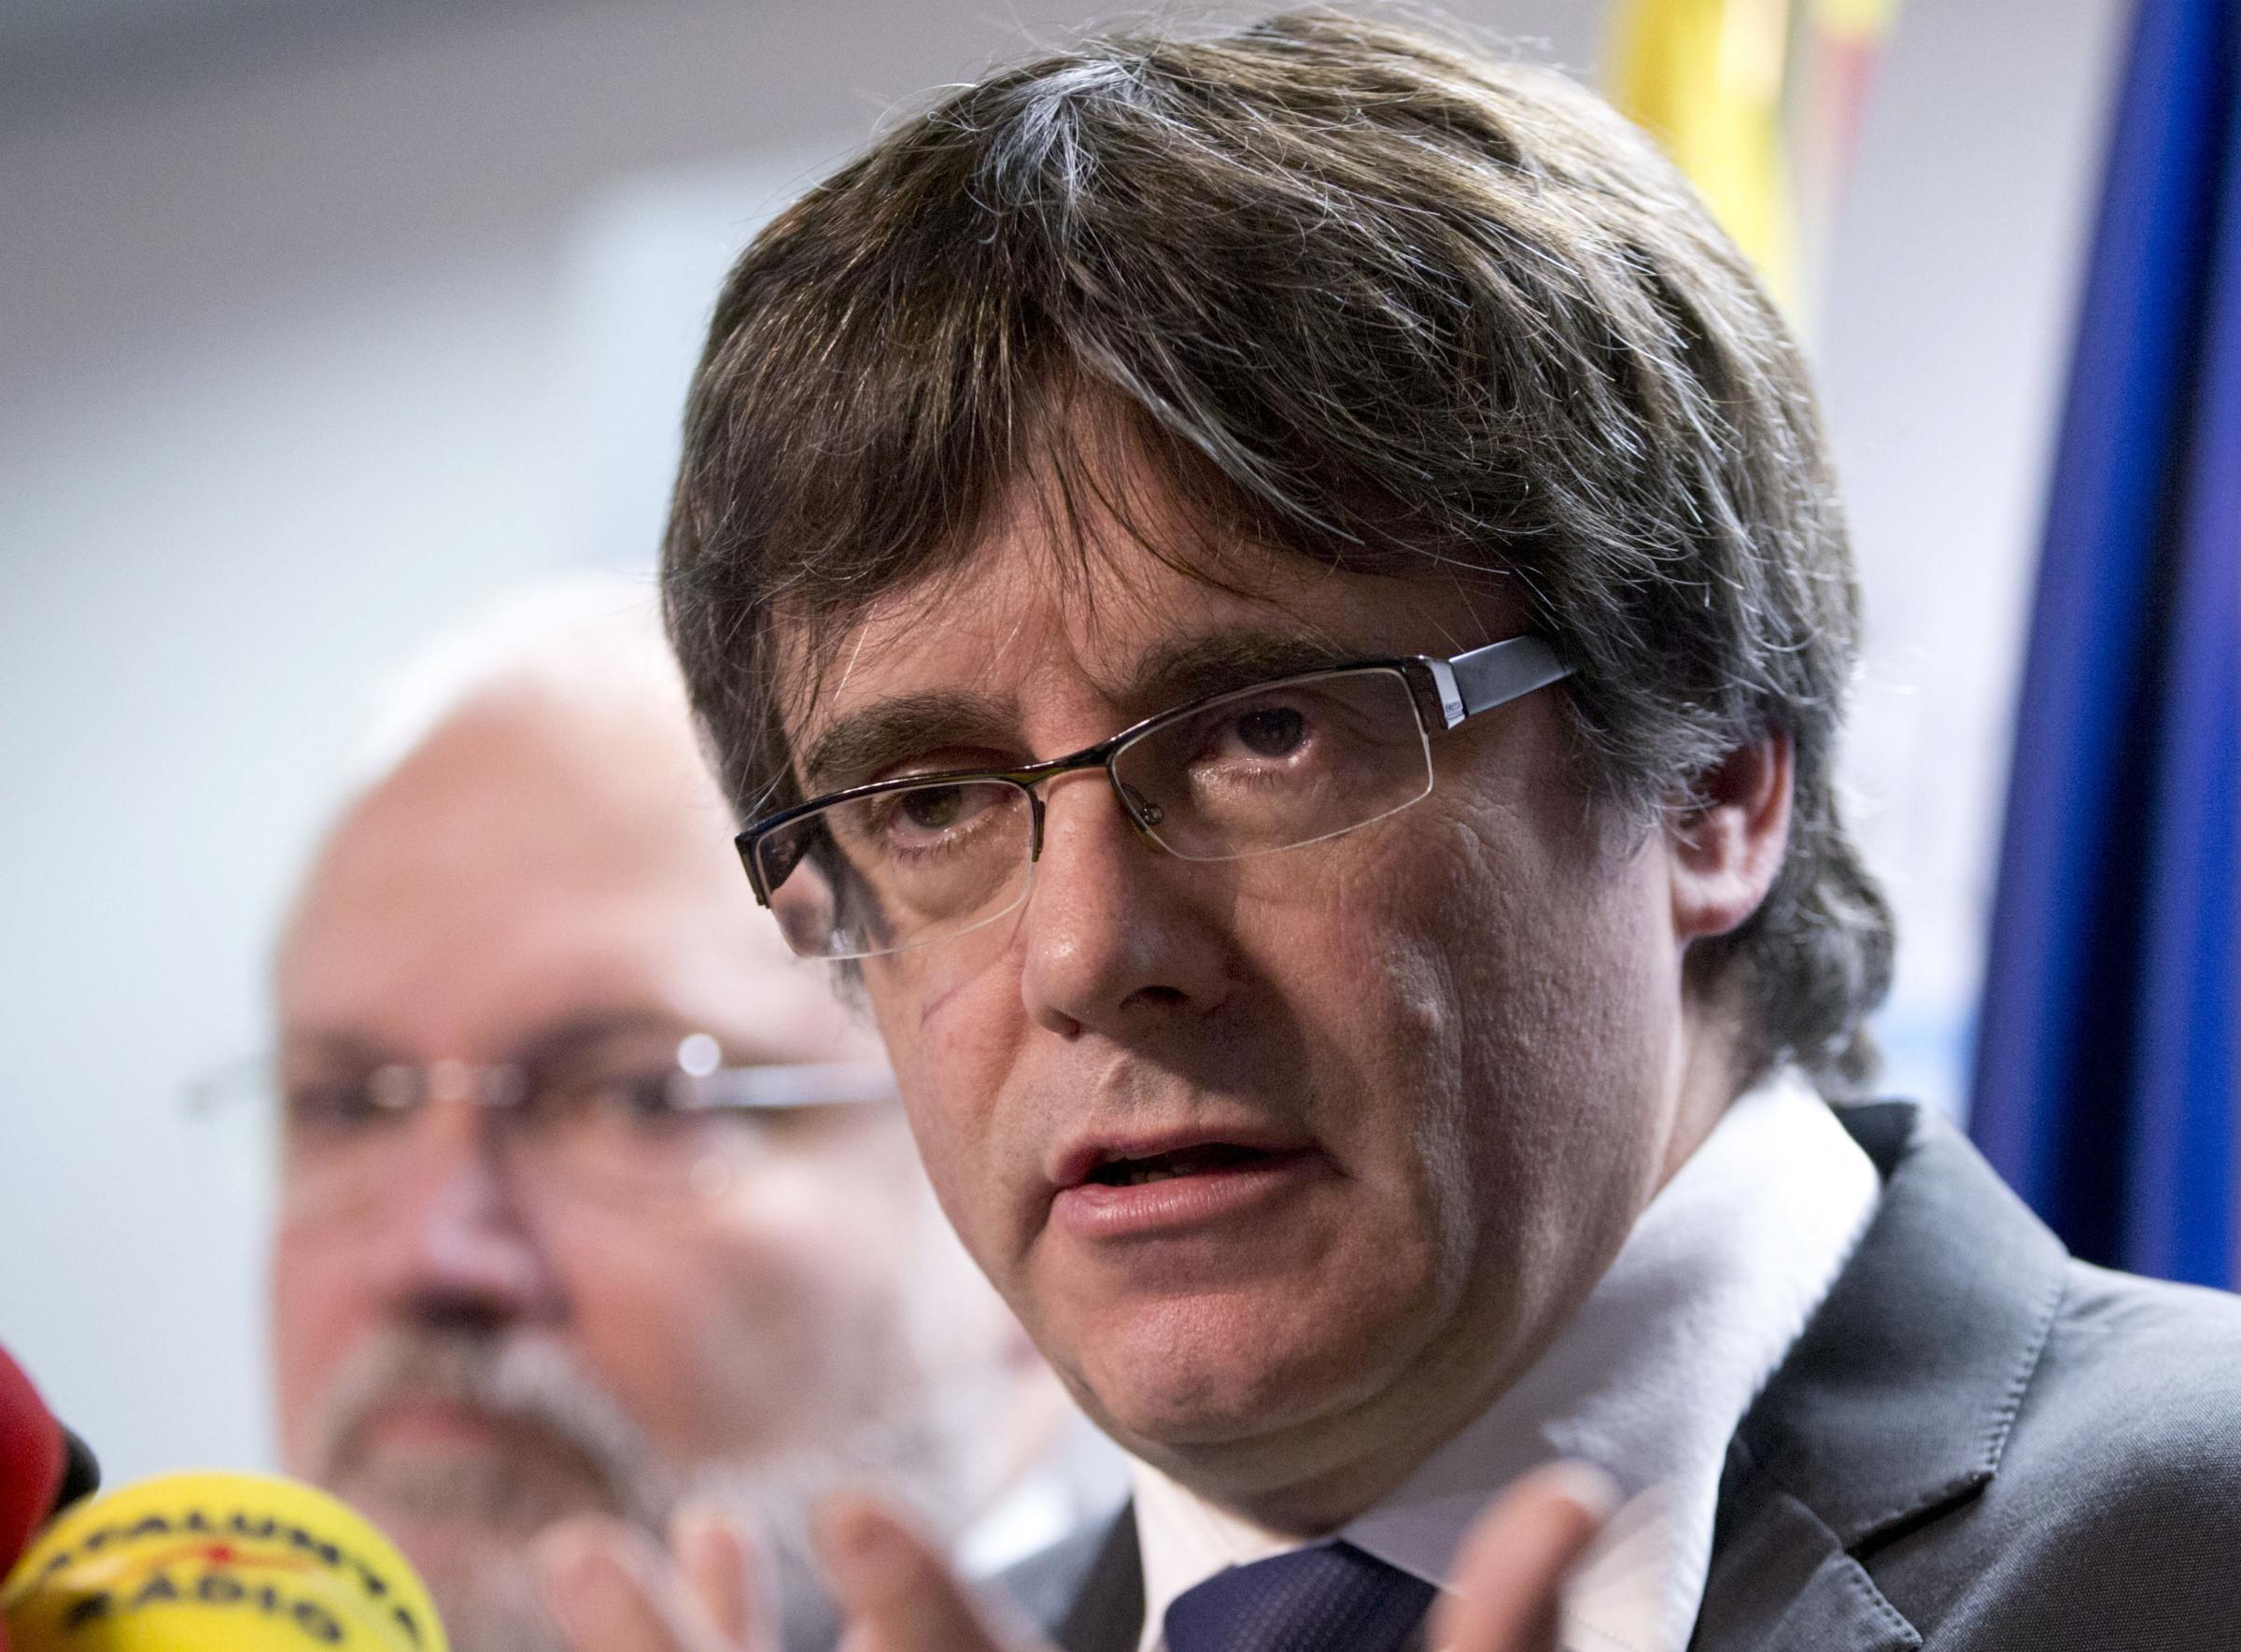 Puigdemont's case has been likened to the UK jailing Nicola Sturgeon and Salmond over independence